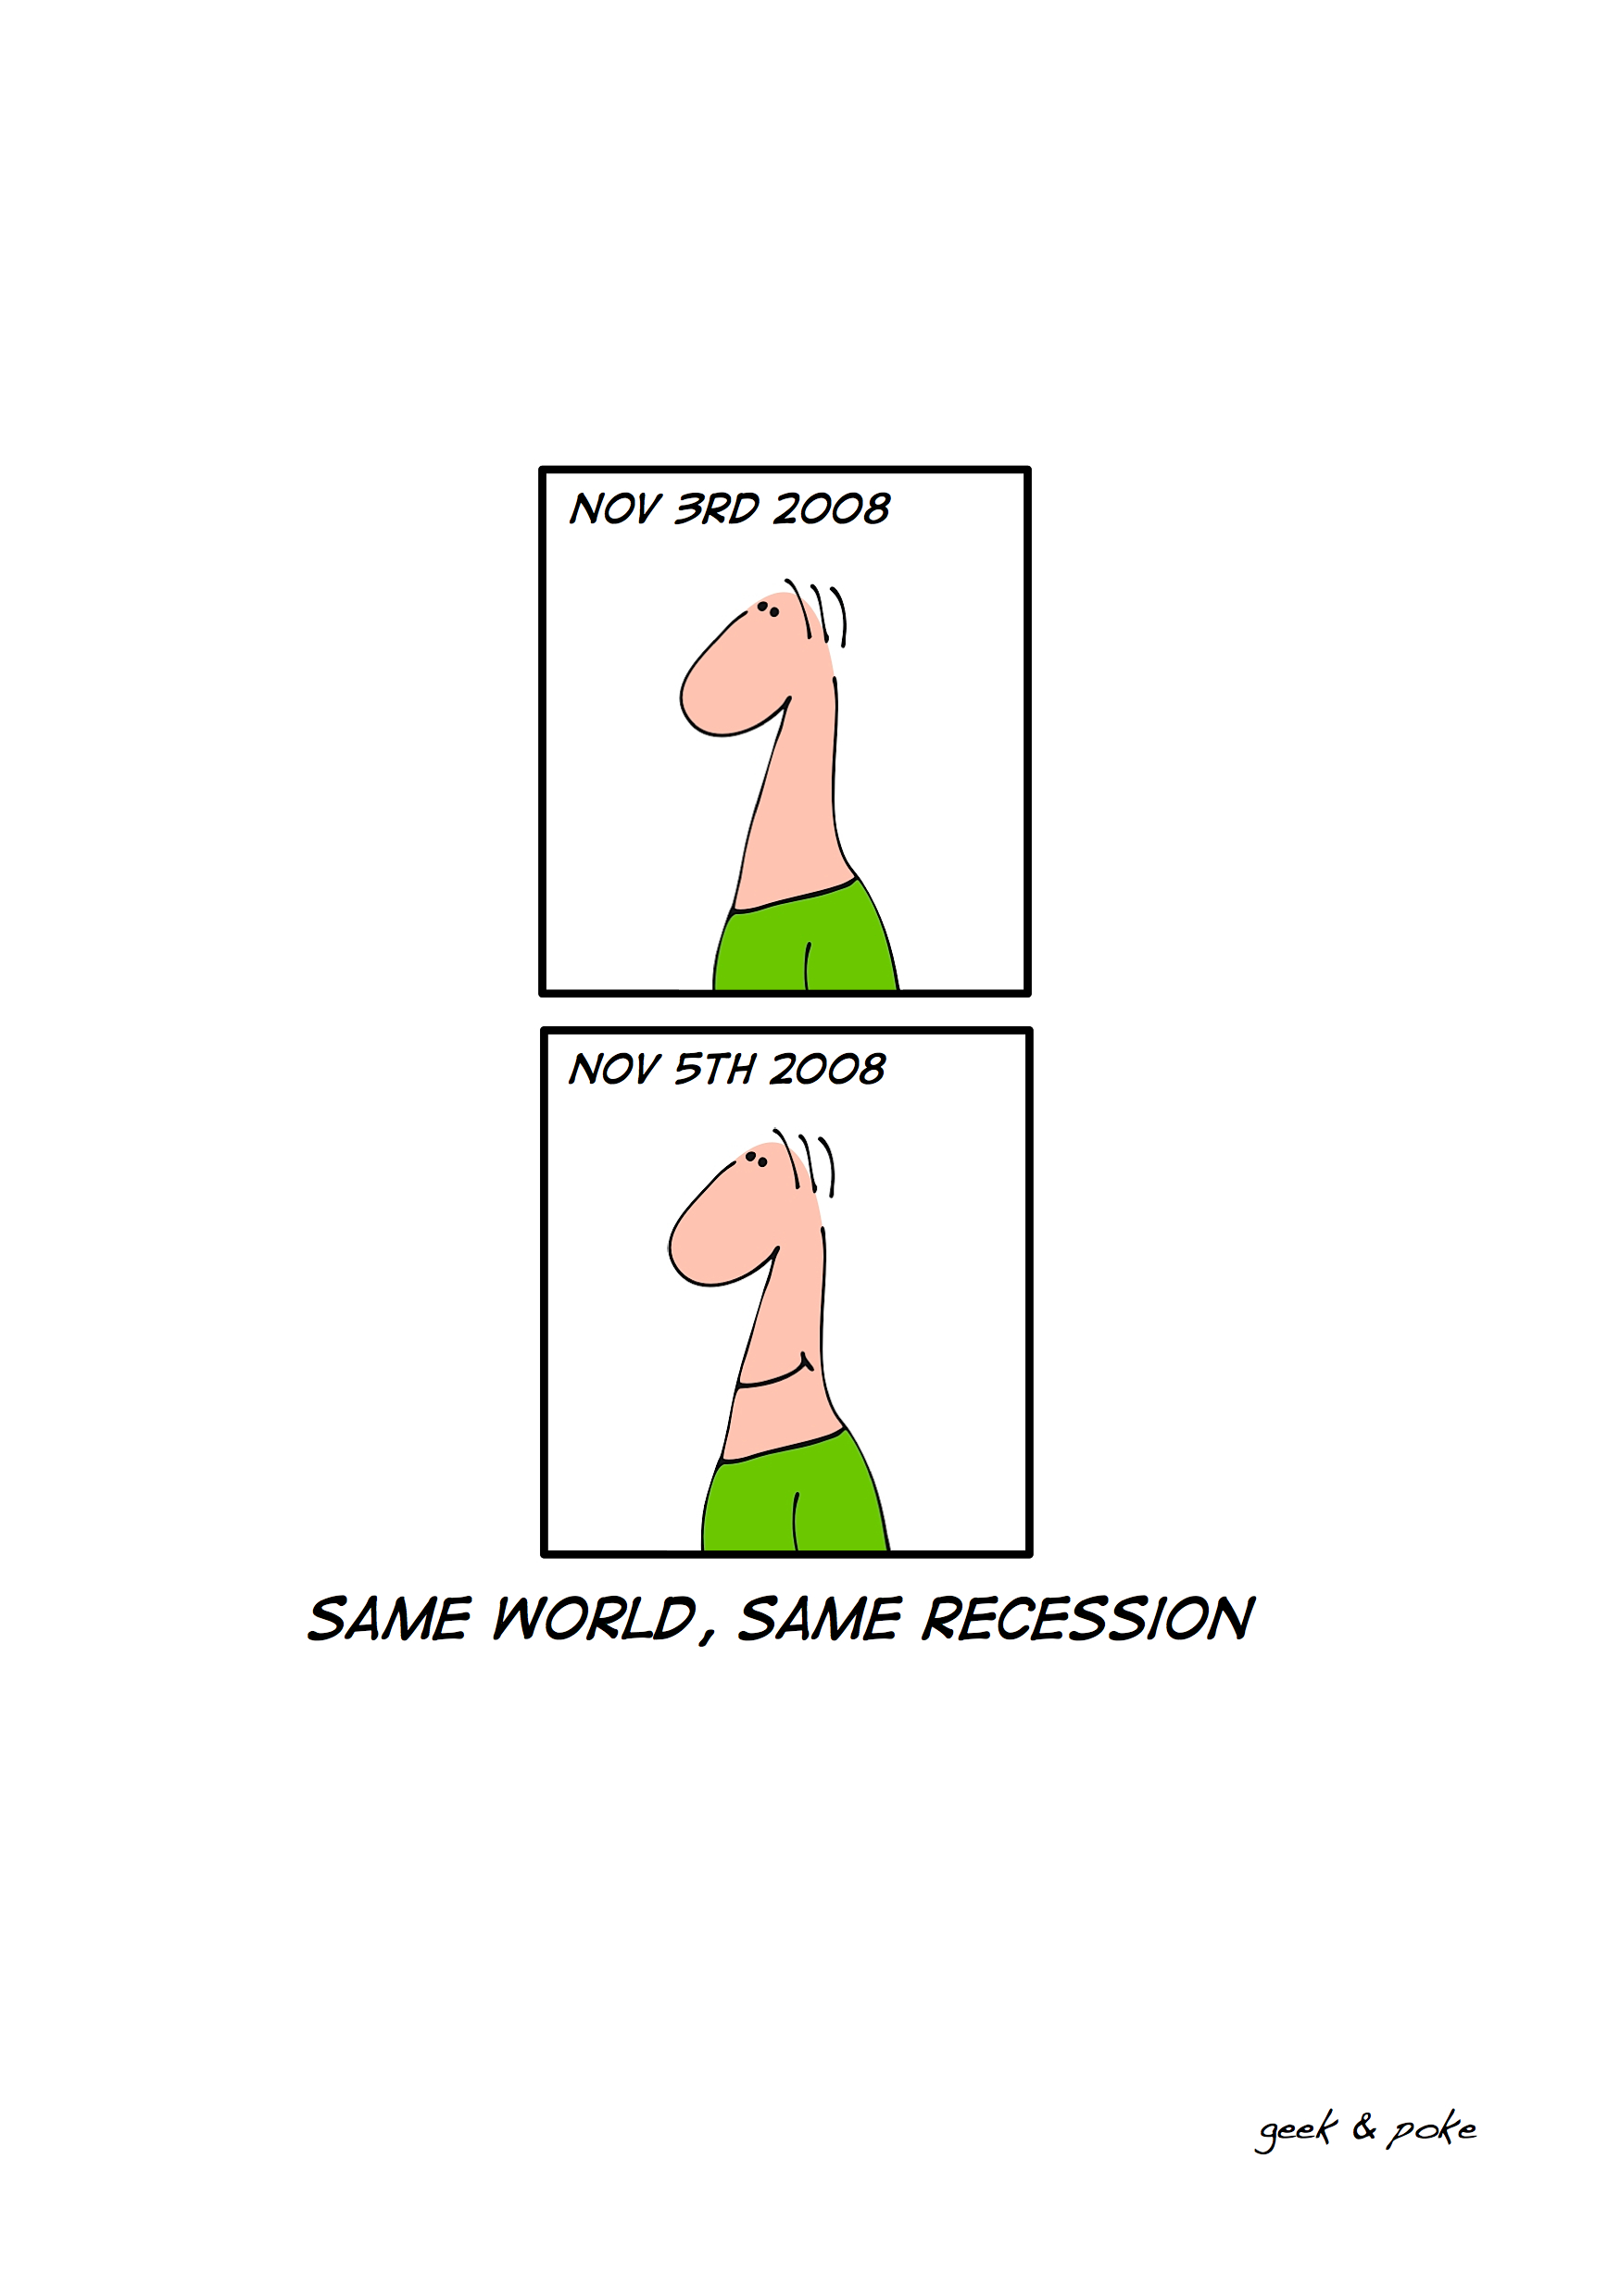 Same world, same recession